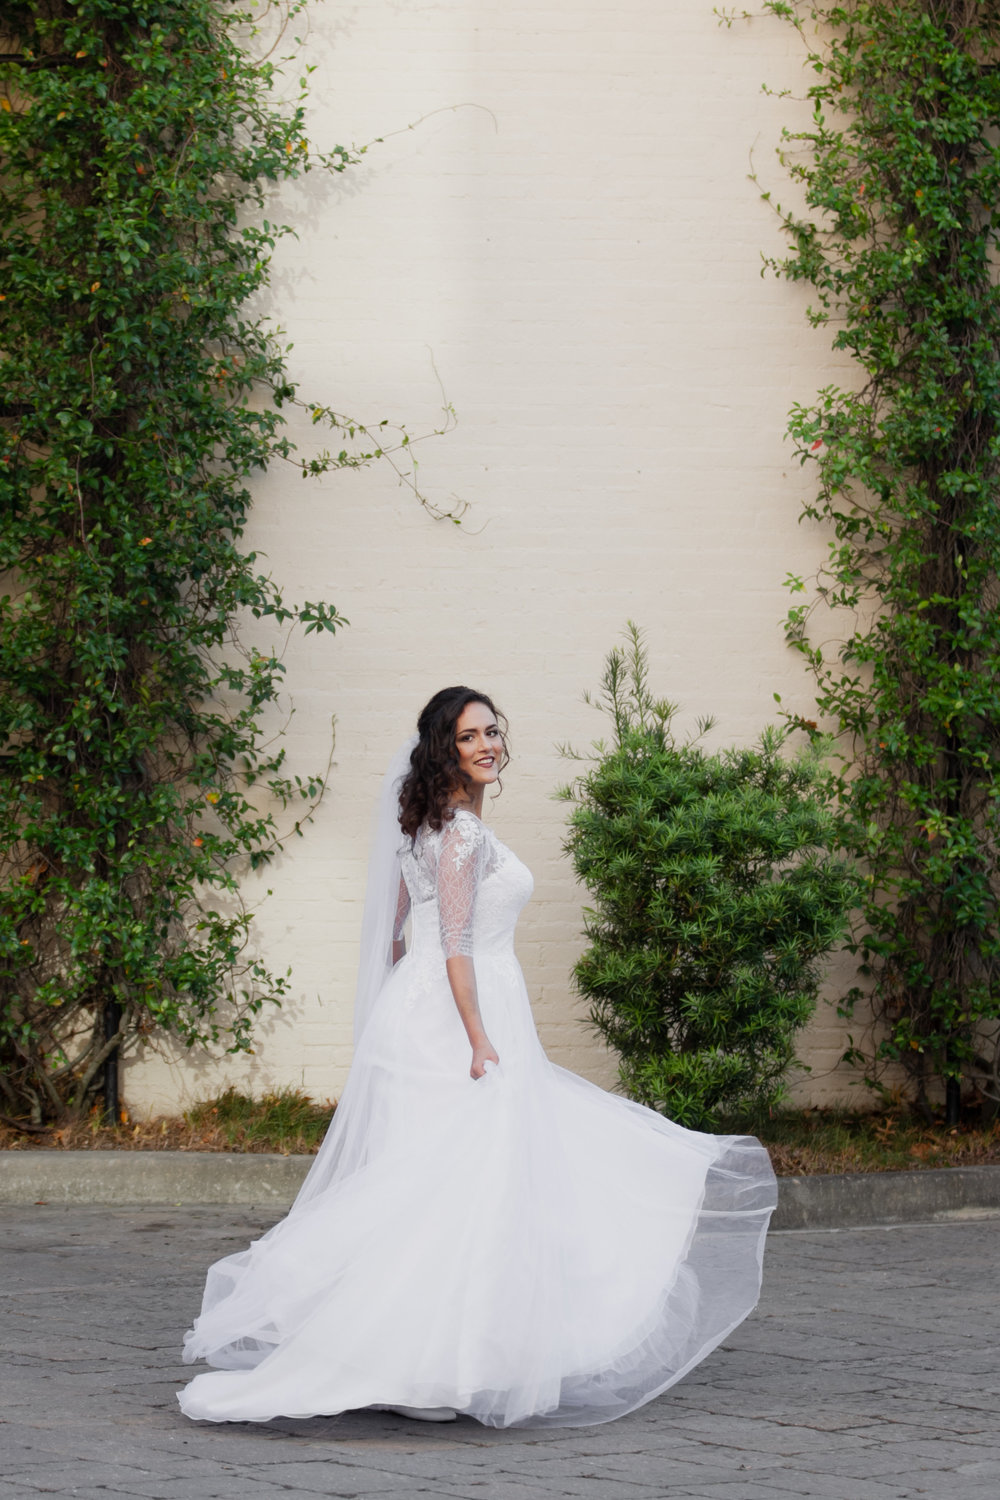 Rebekah Sanchez Bridal Portraits-Final-0015.jpg